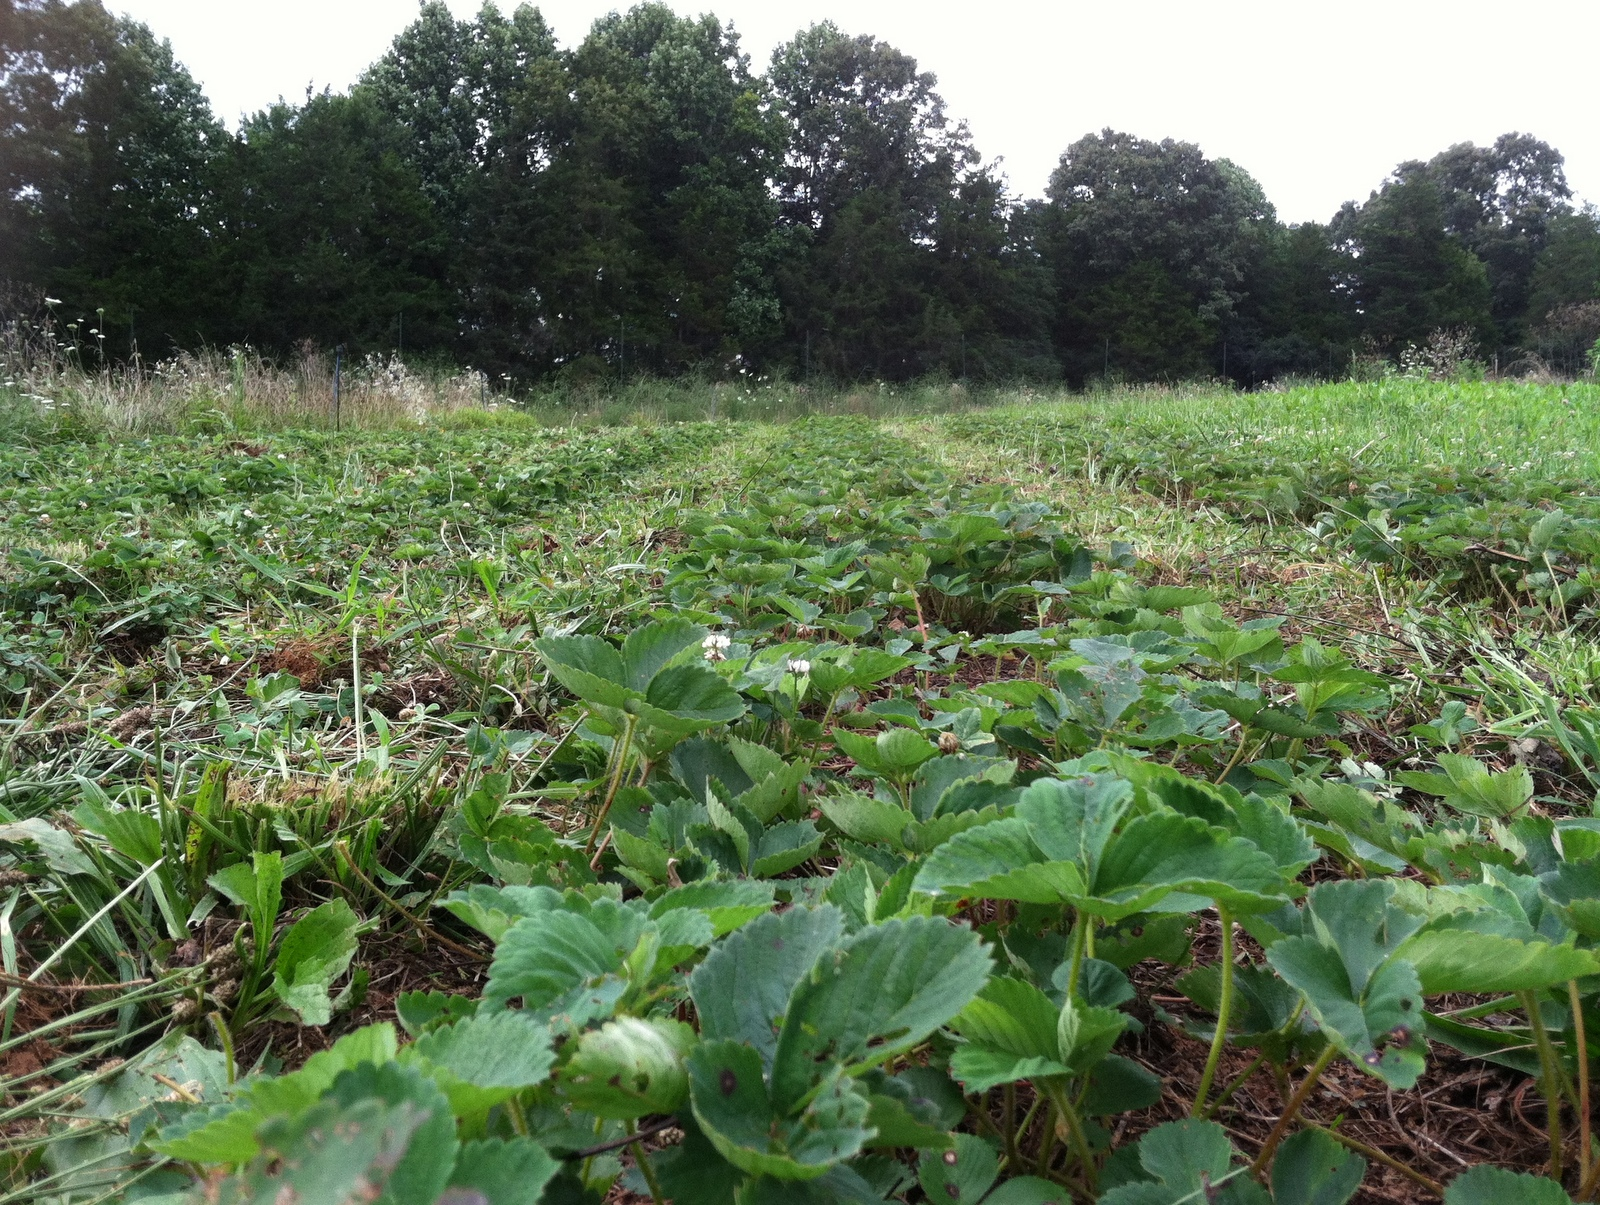 Wet weather makes fine weeding. The strawberries get cleaned-up for next spring.